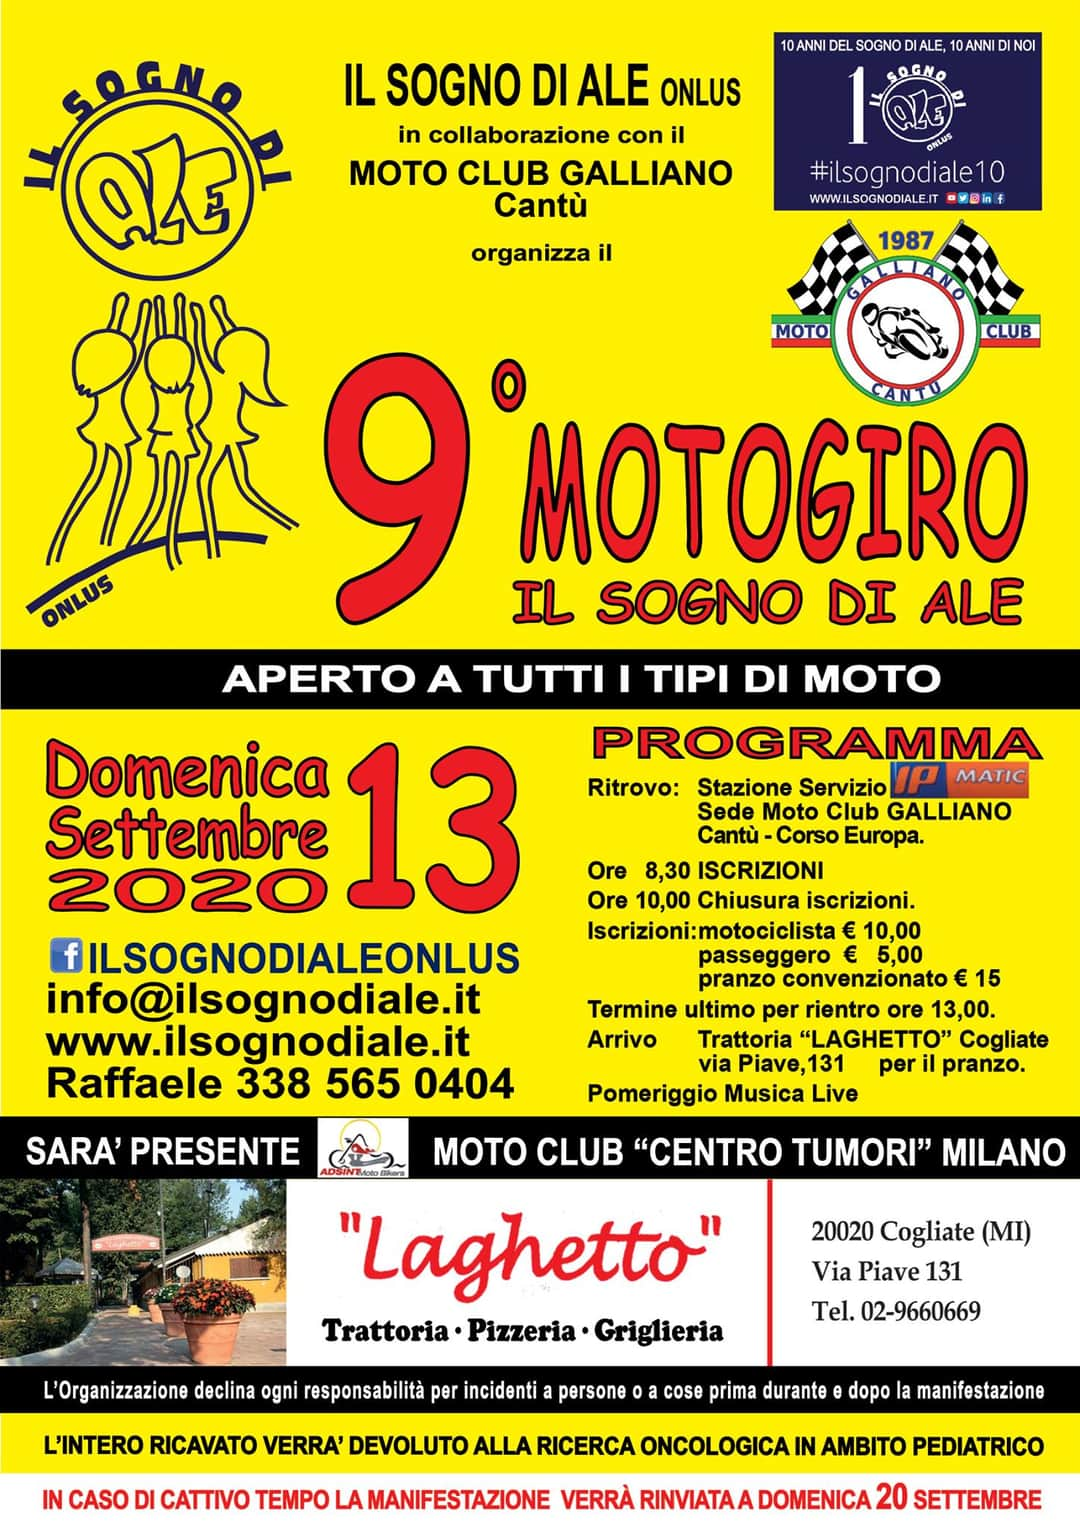 Motogiro - 13 Settembre 2020 - Moto Club Galliano - Cantù (CO)